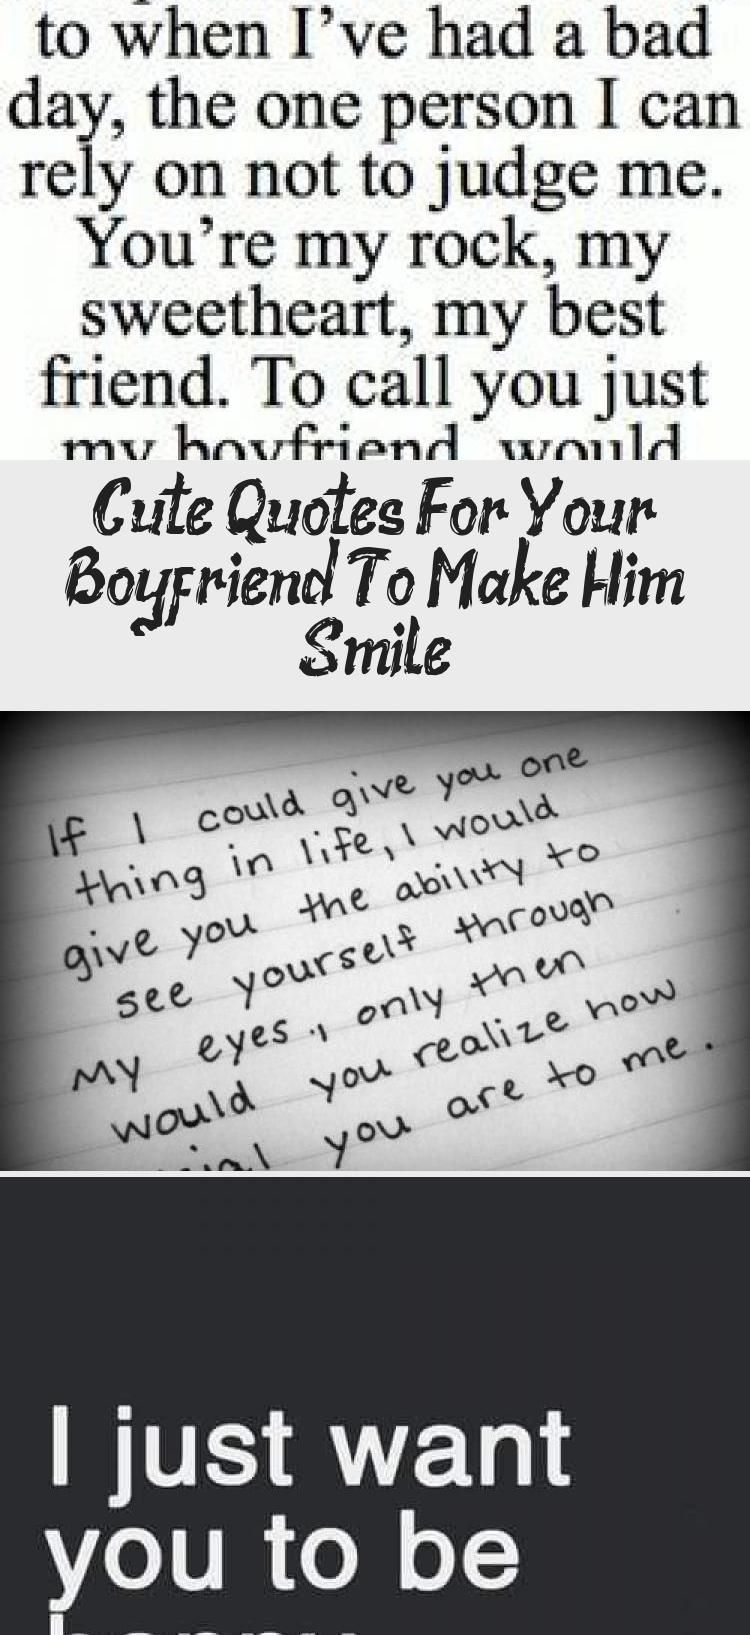 Cute Quotes For Your Boyfriend To Make Him Smile Cute Love